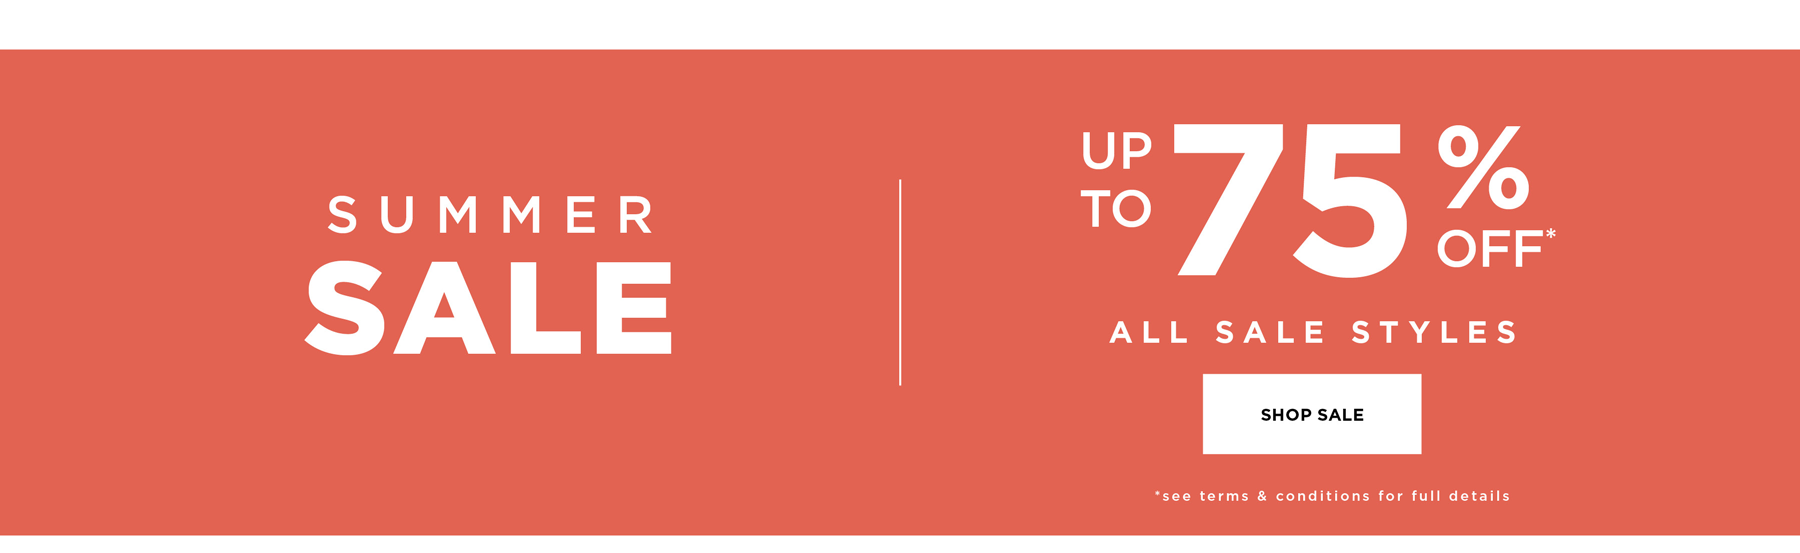 SUMMER SALE - UP TO 75% OFF* ALL SALE STYLES - *Terms & Conditions Apply - SHOP NOW